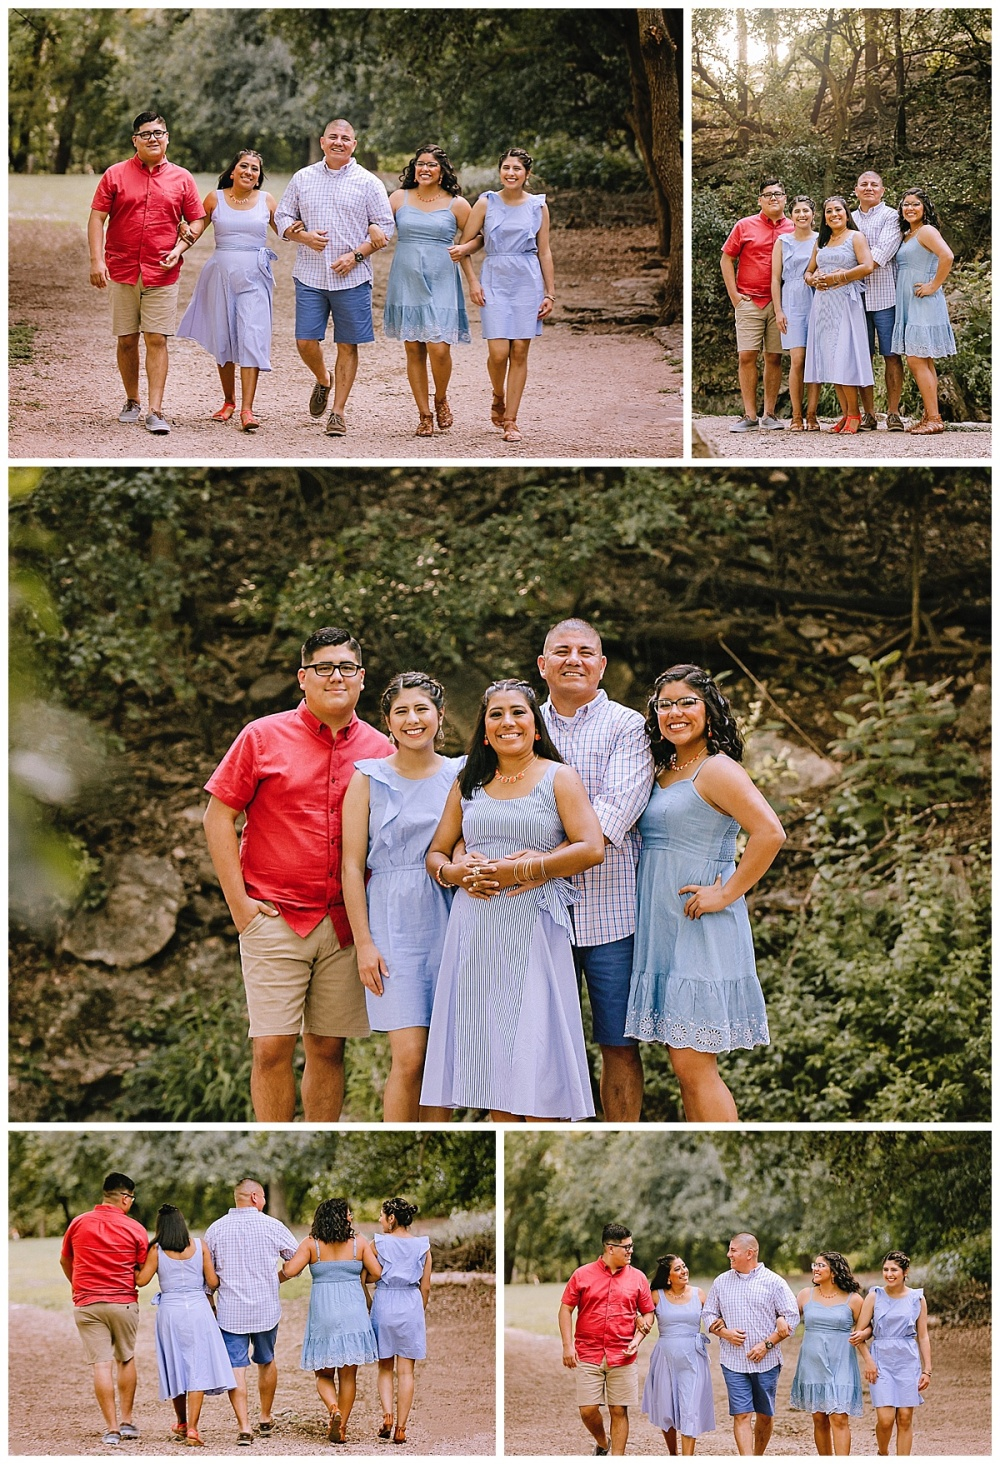 Carly-Barton-Photography-Family-Session-Landa-Park-New-Braunfels-Texas-Benavides_0004.jpg